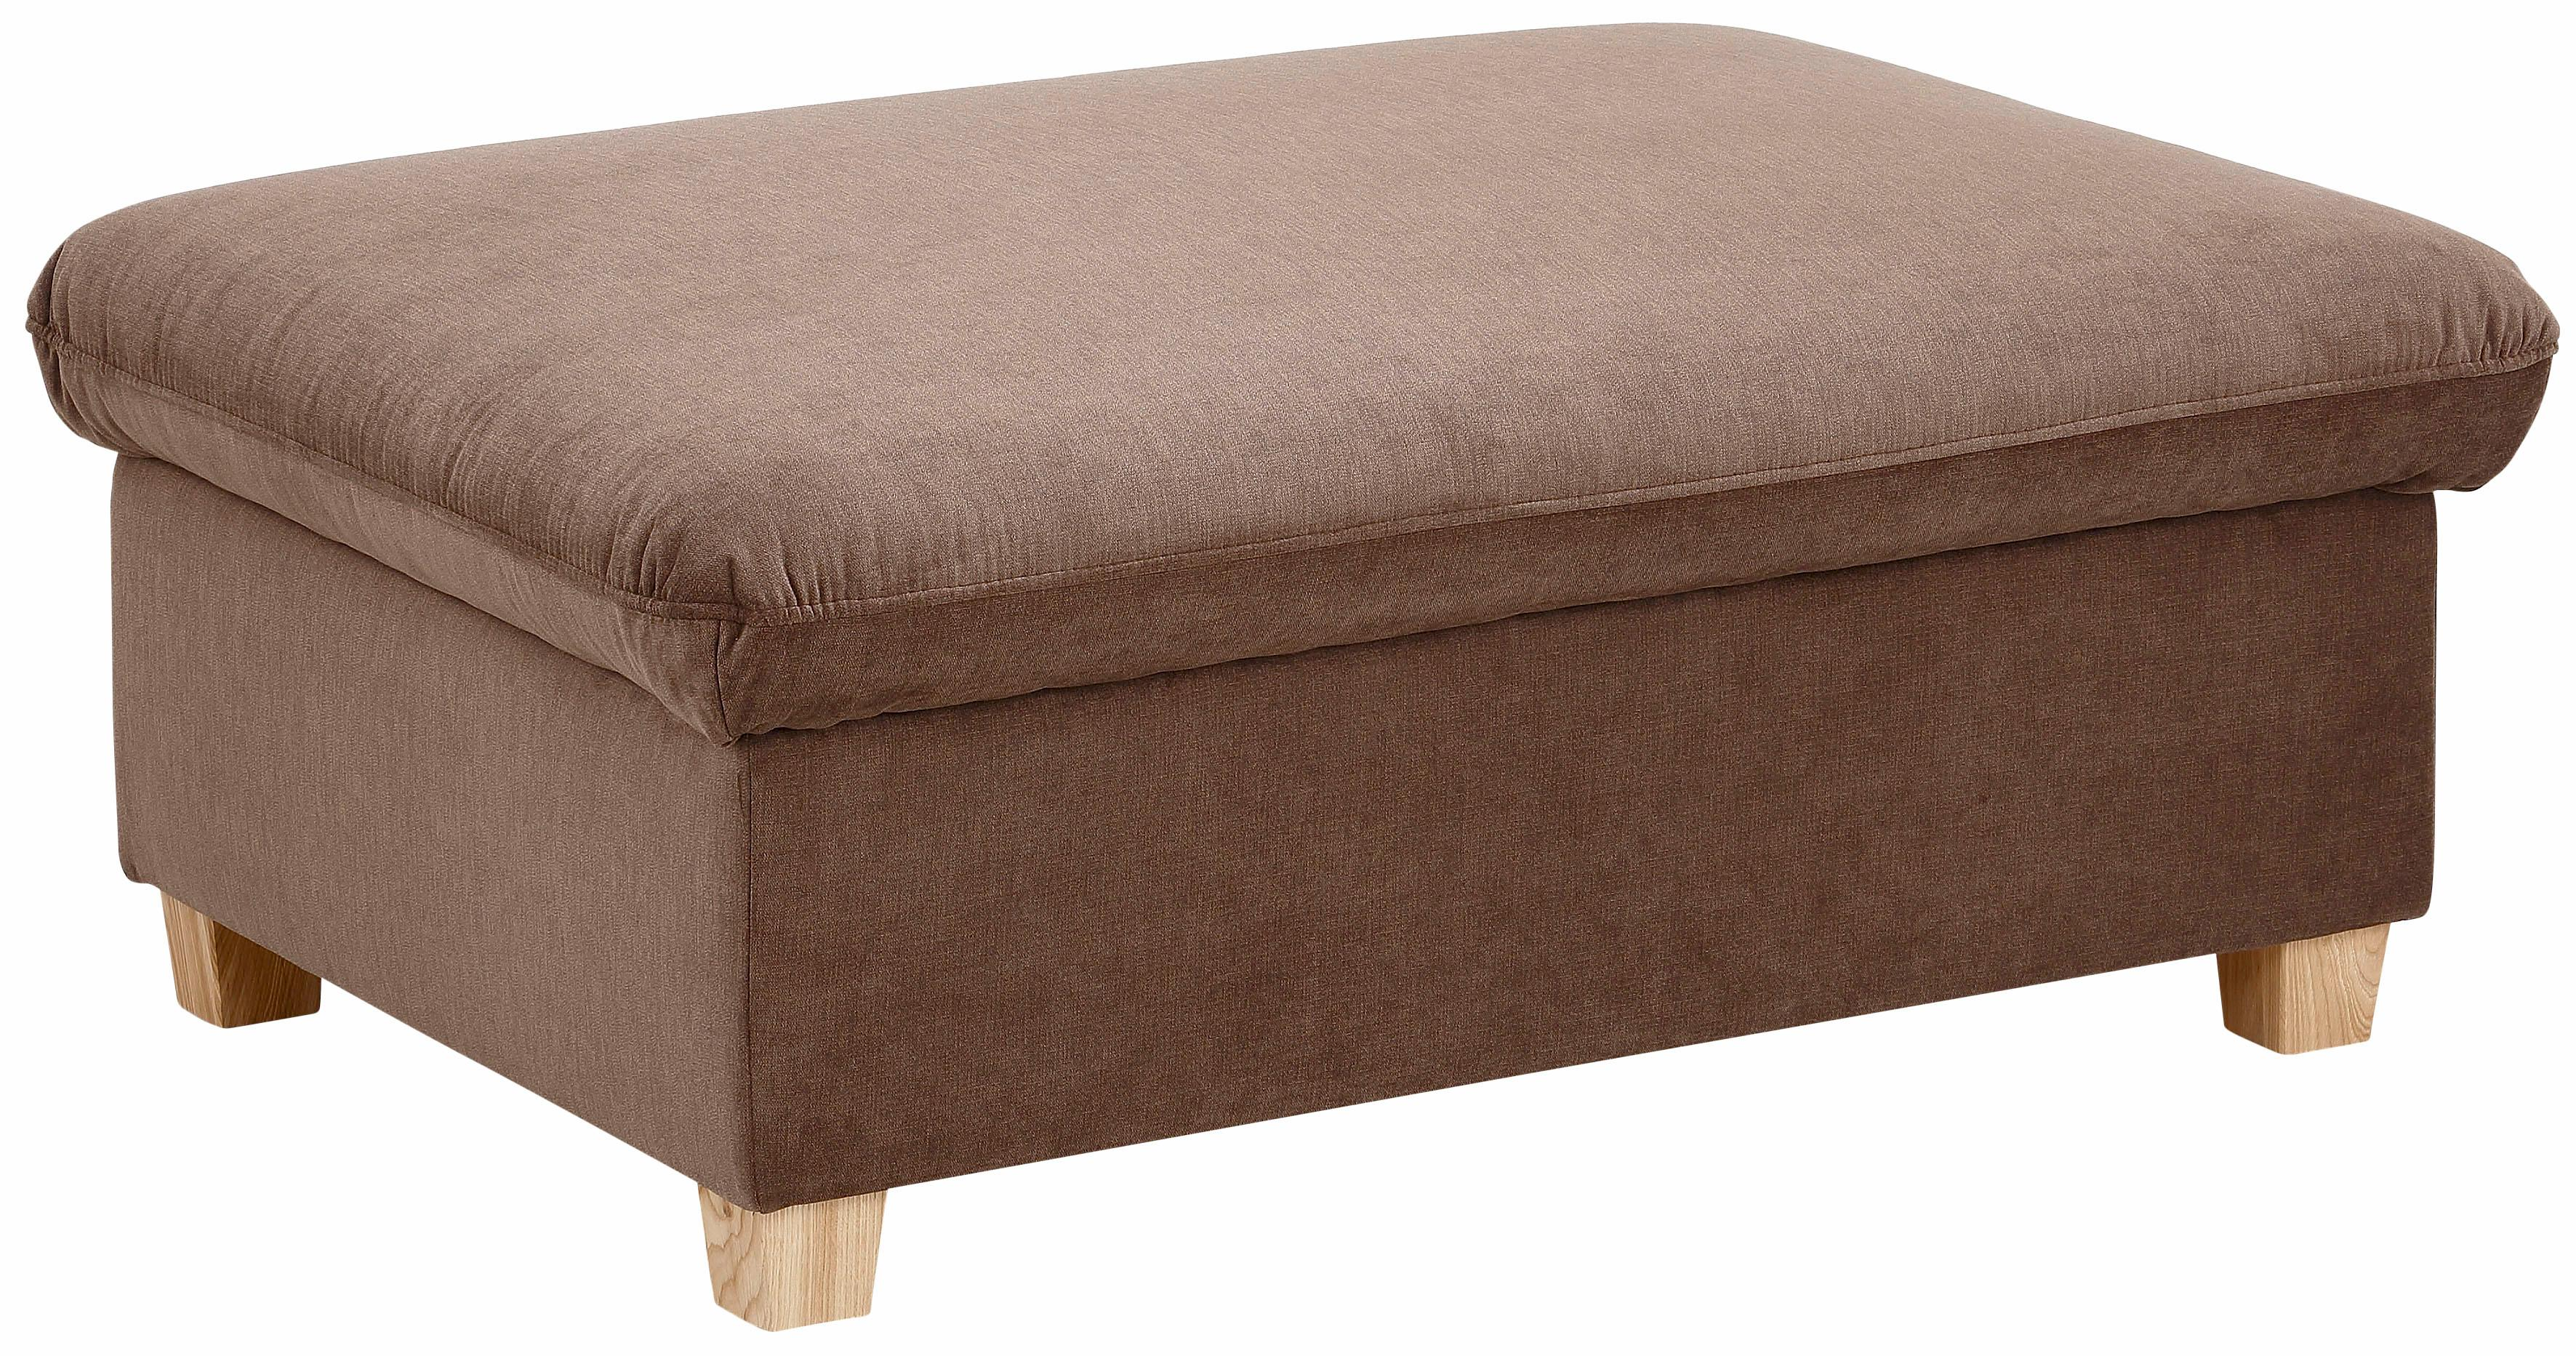 Home affaire Hocker »Bergamo« | Wohnzimmer > Hocker & Poufs > Polsterhocker | home affaire